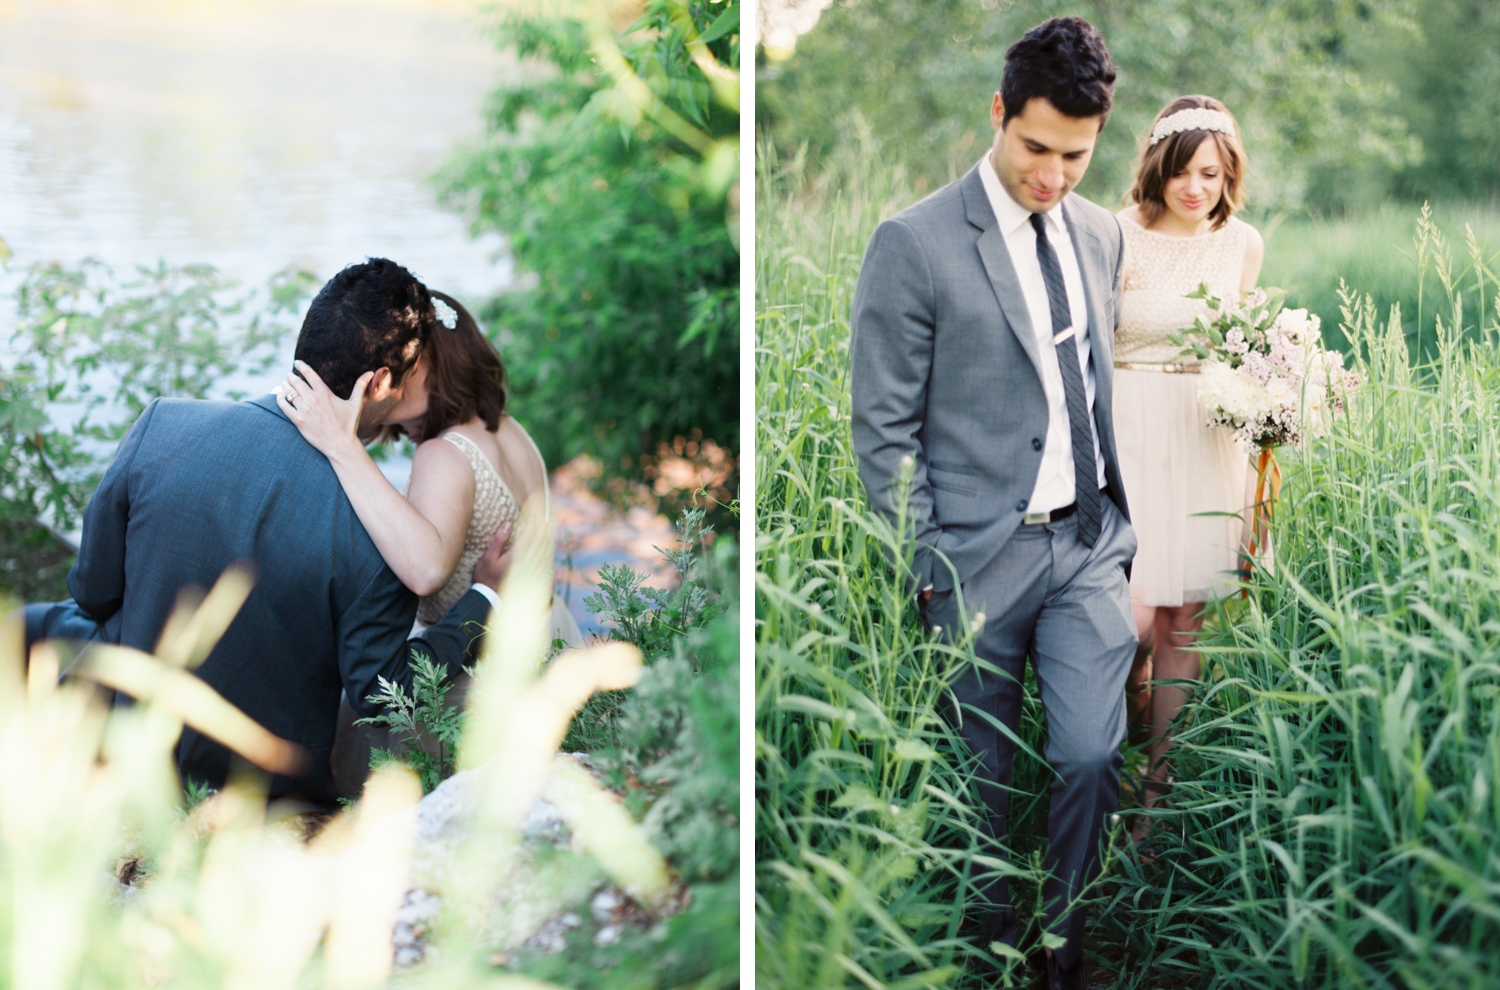 kateweinsteinphoto_megan_chris_milwaukee_wedding.jpg